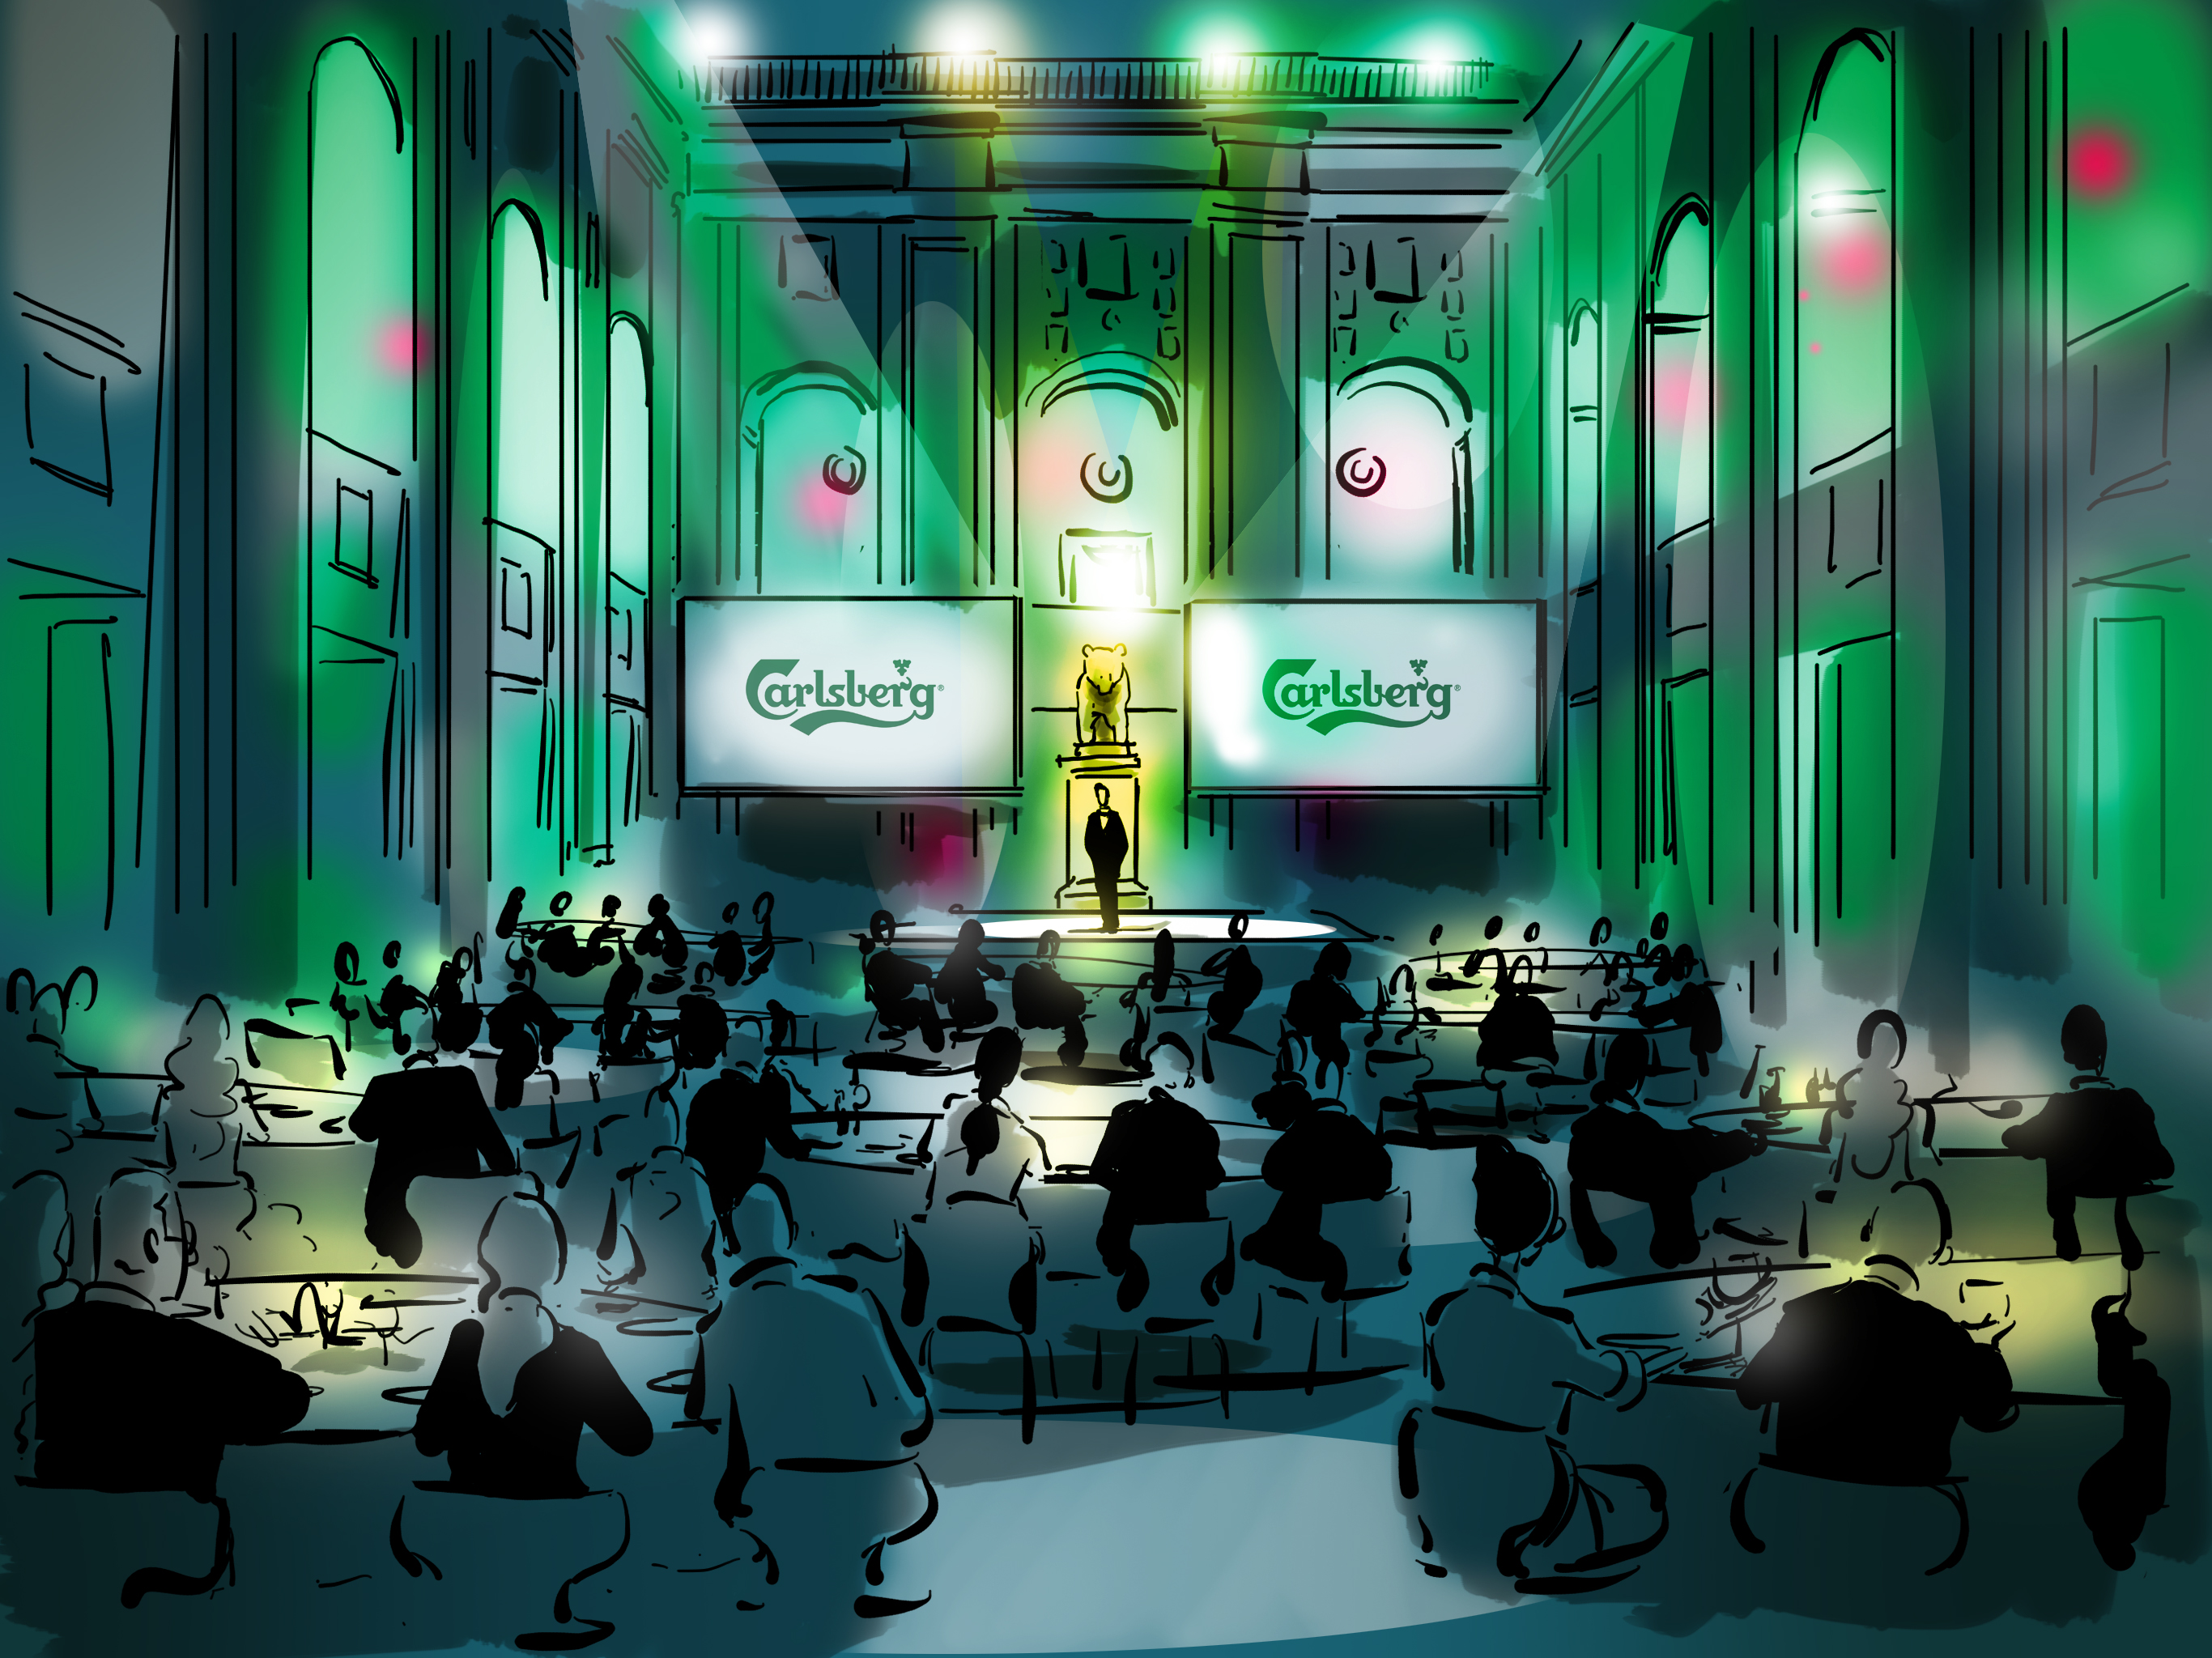 oh man productions-illustration-Carlsberg event